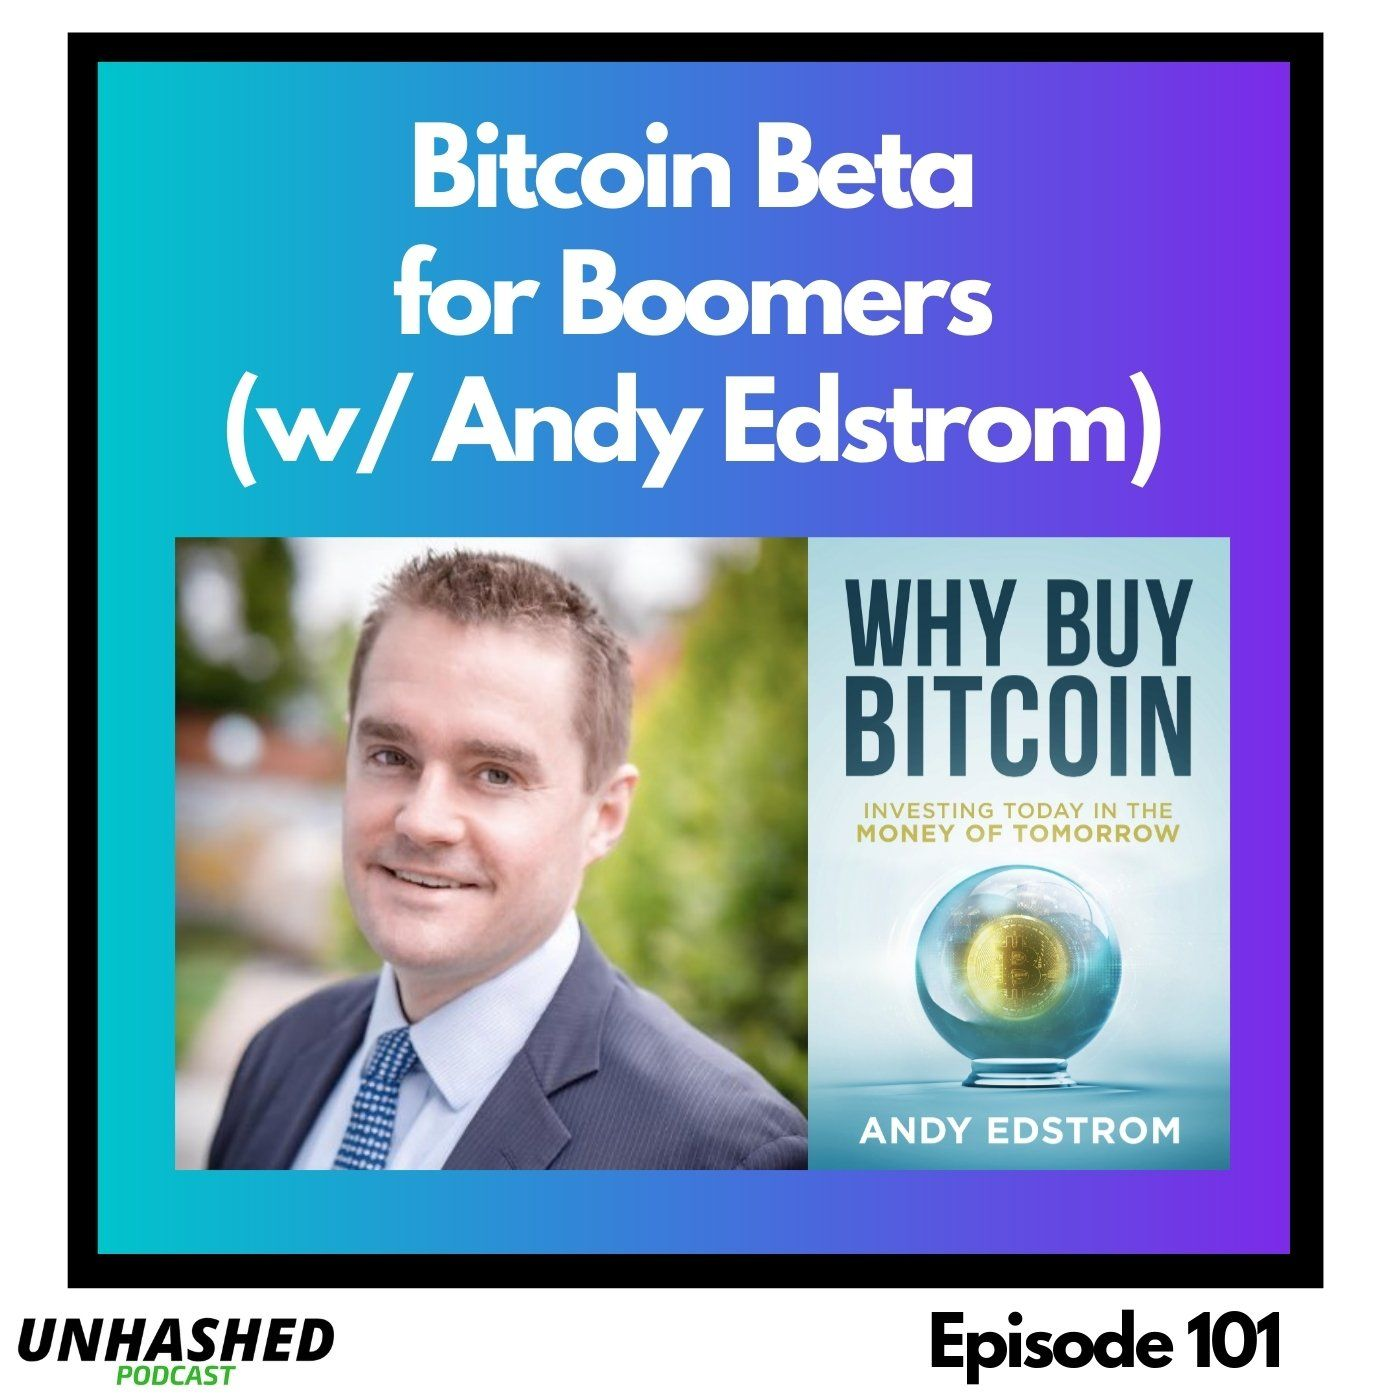 Bitcoin Beta for Boomers (w/ Andy Edstrom)